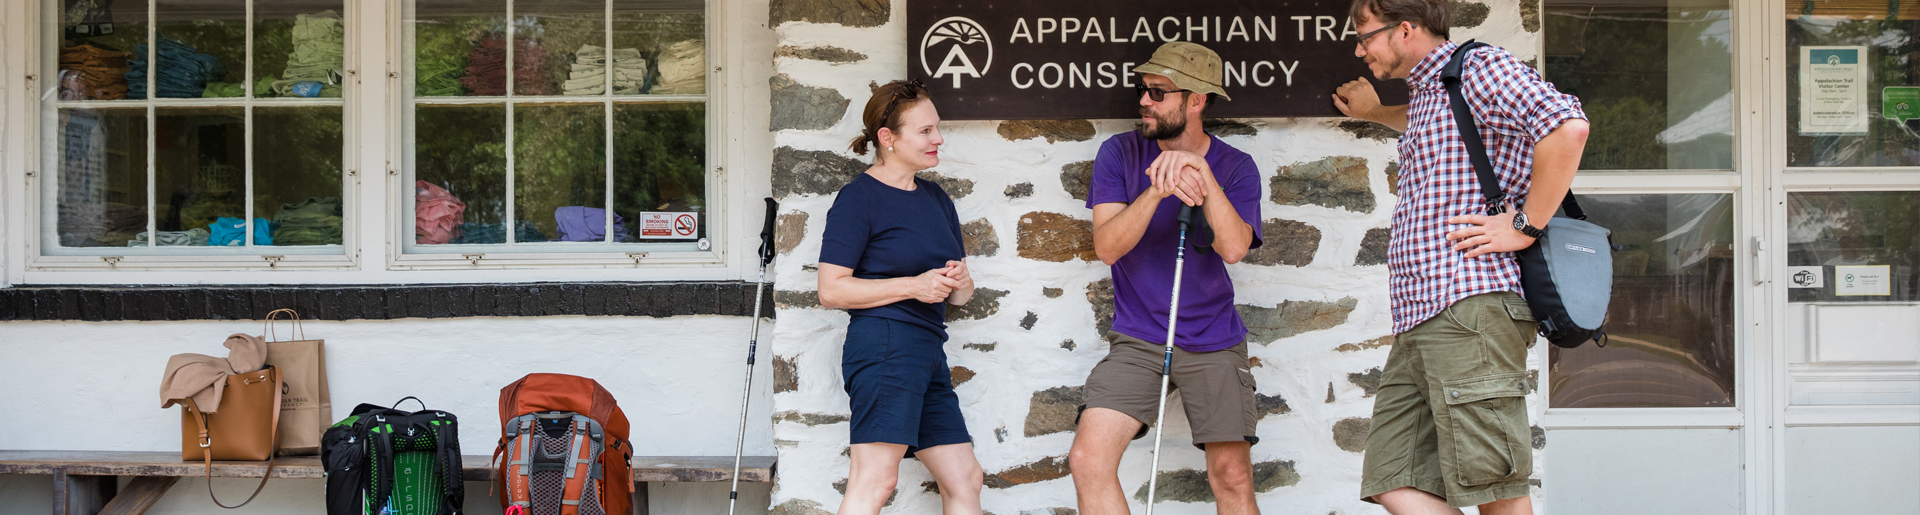 hikers at Appalachian Trail Conservancy harpers ferry West Virginia